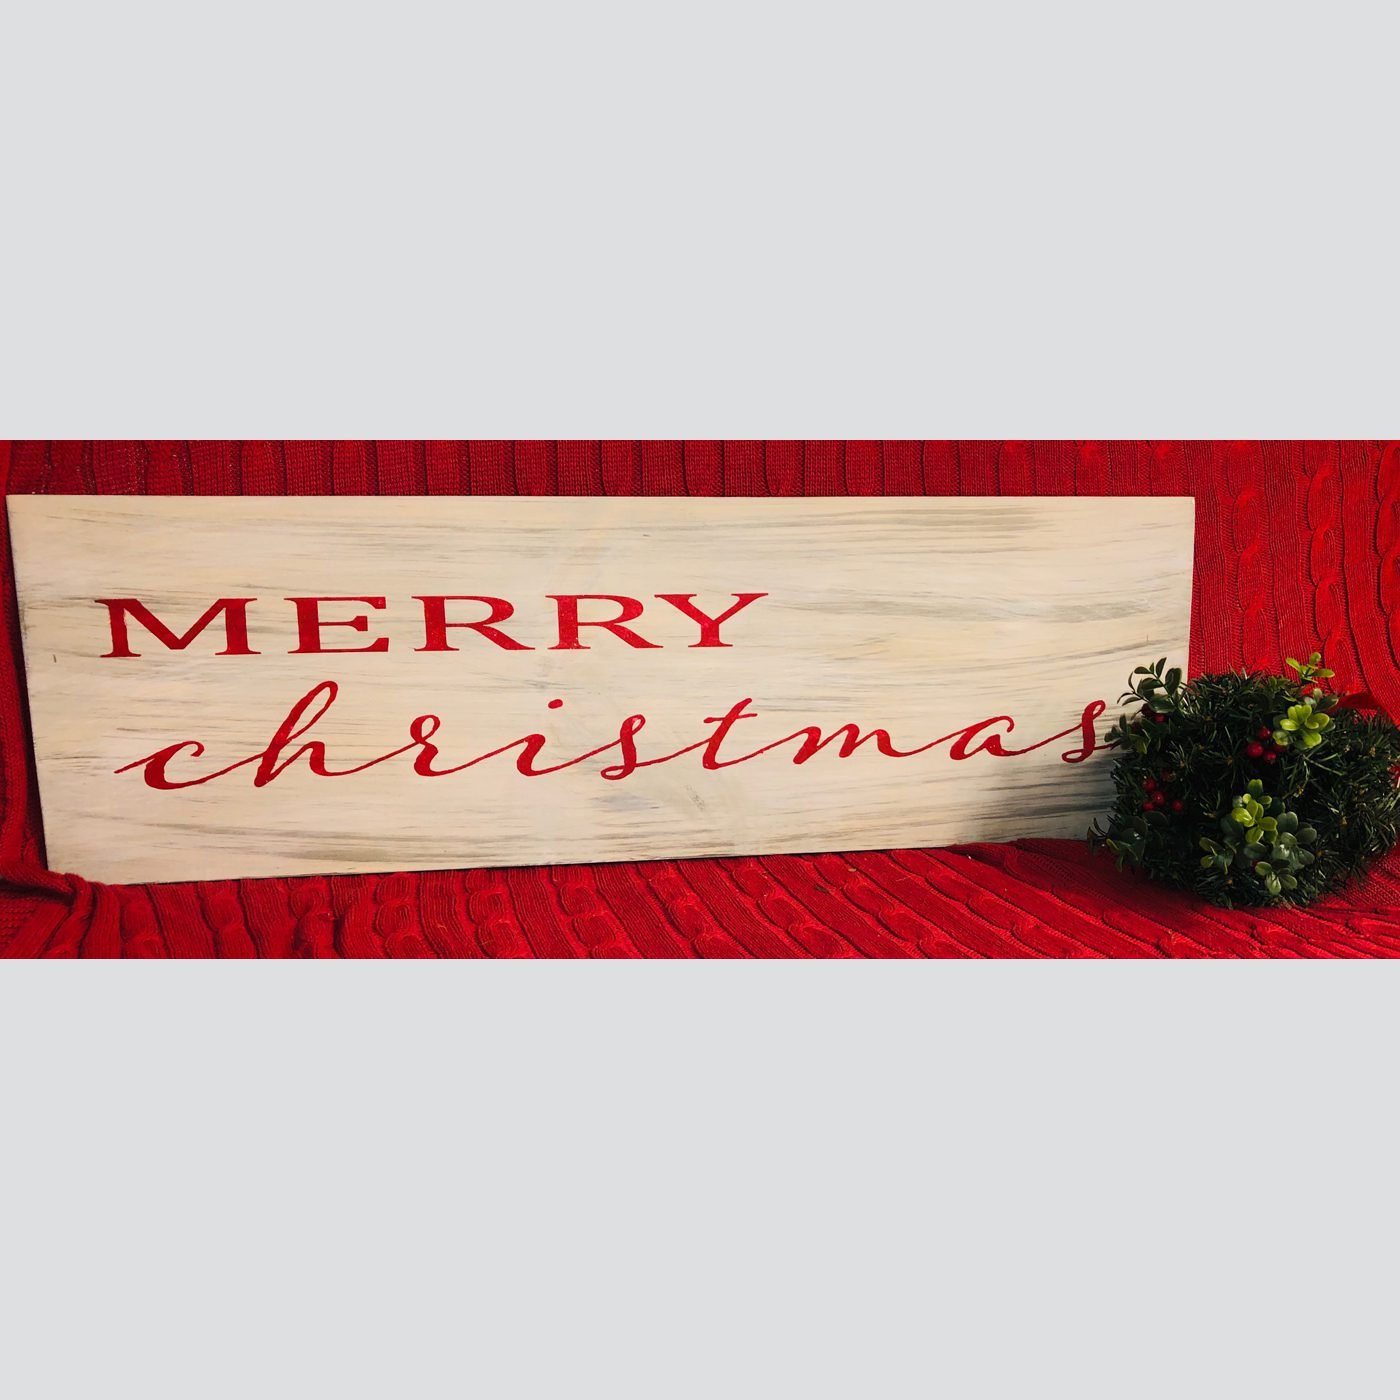 Merry Christmas DIY wood sign